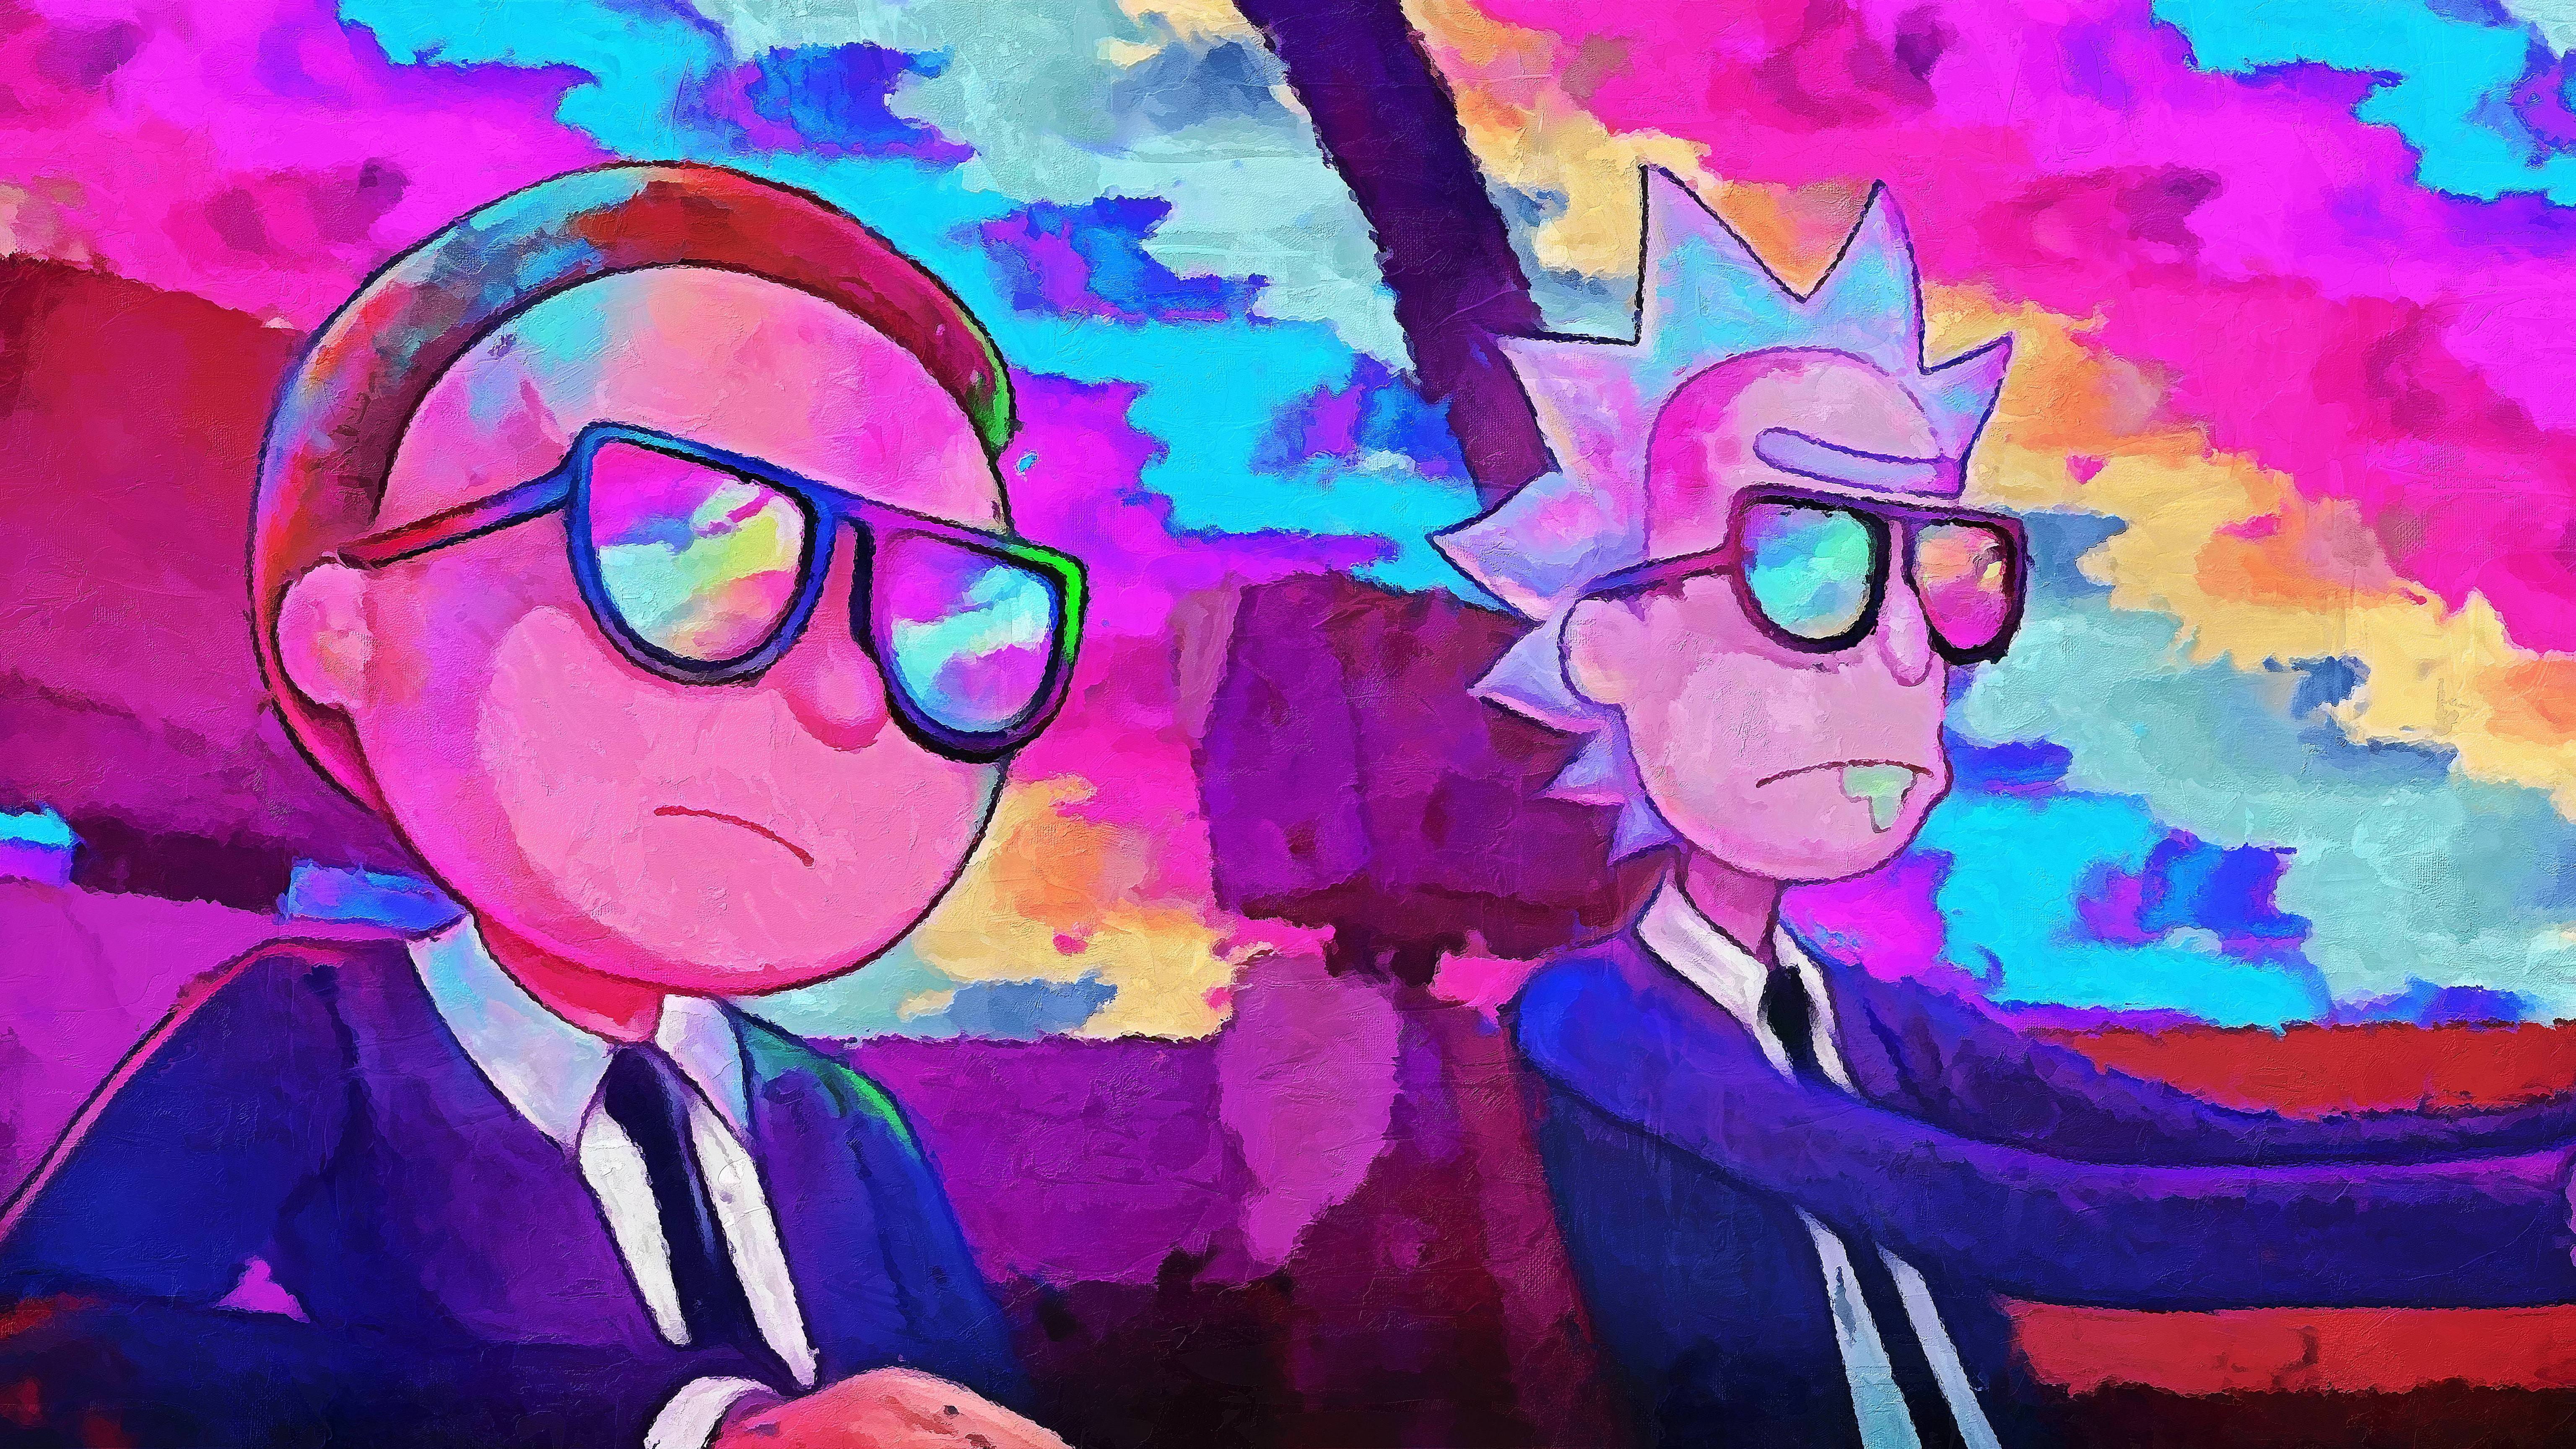 Rick And Morty 4k Wallpapers   Top Rick And Morty 4k 6144x3456